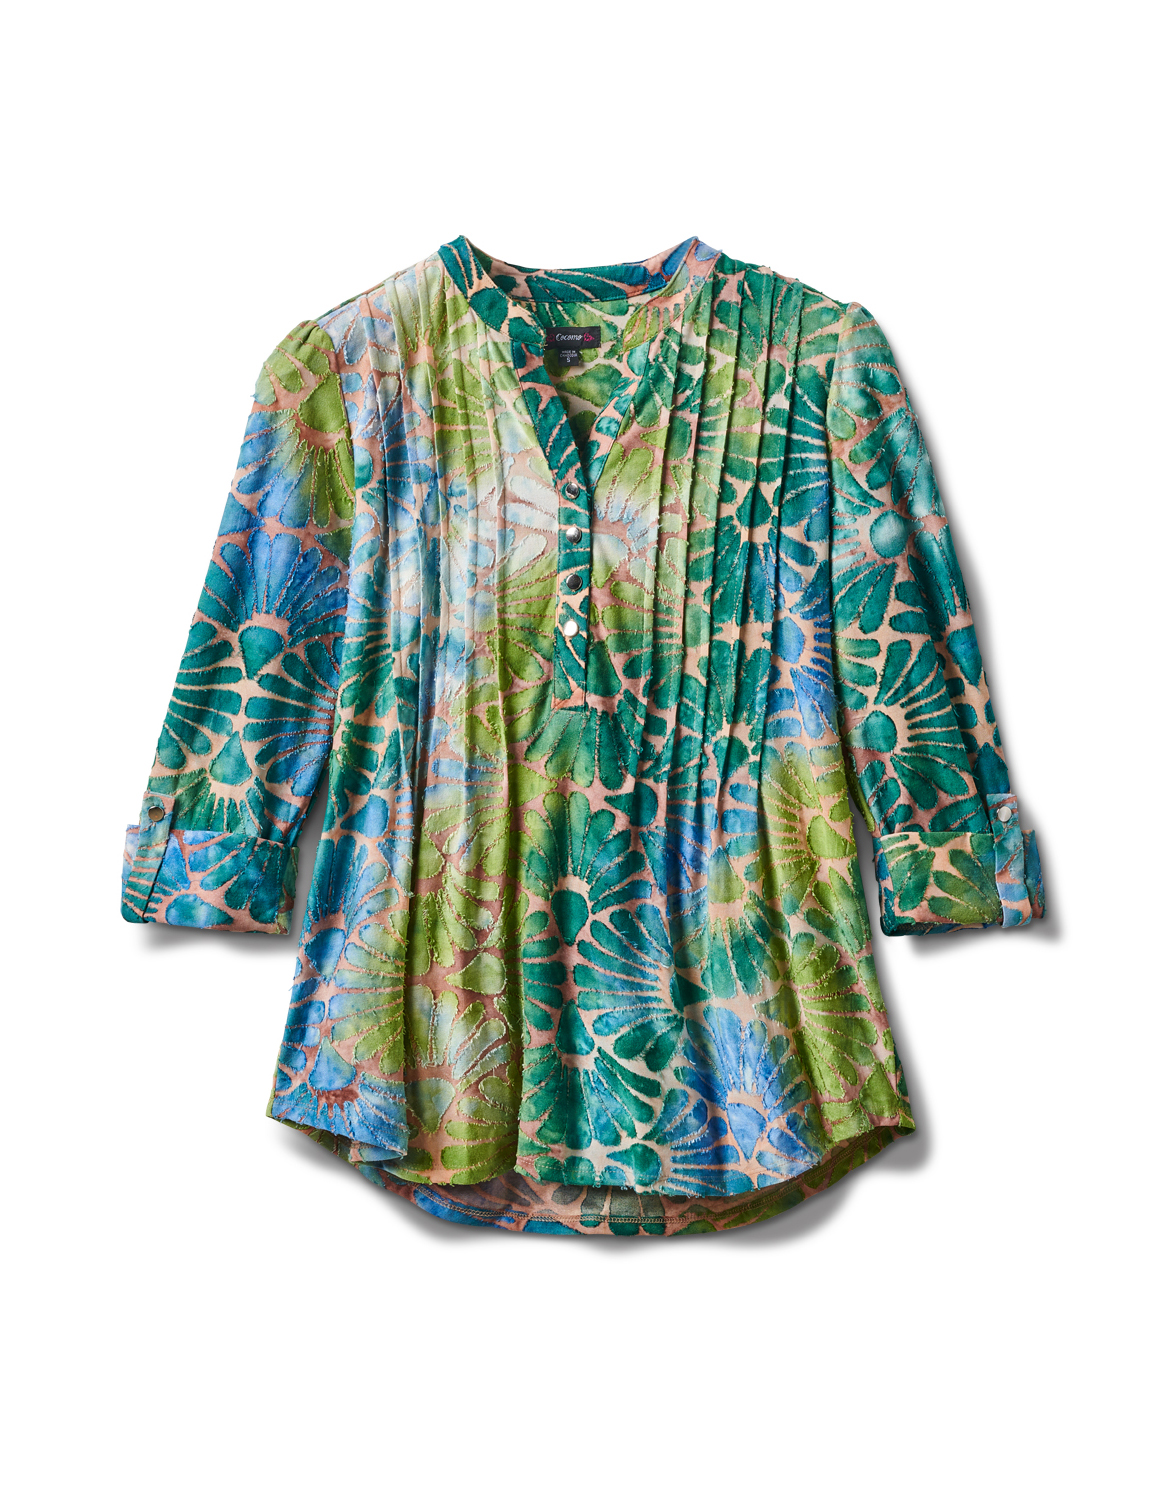 Tie Dye Clip Jaquard Popover Knit Top -Blue/Green - Front